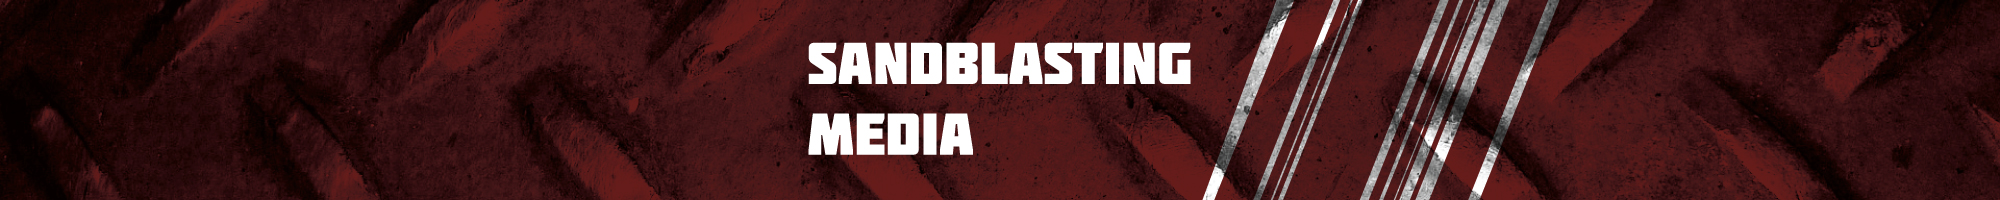 Sandblasting Media - Read Articles